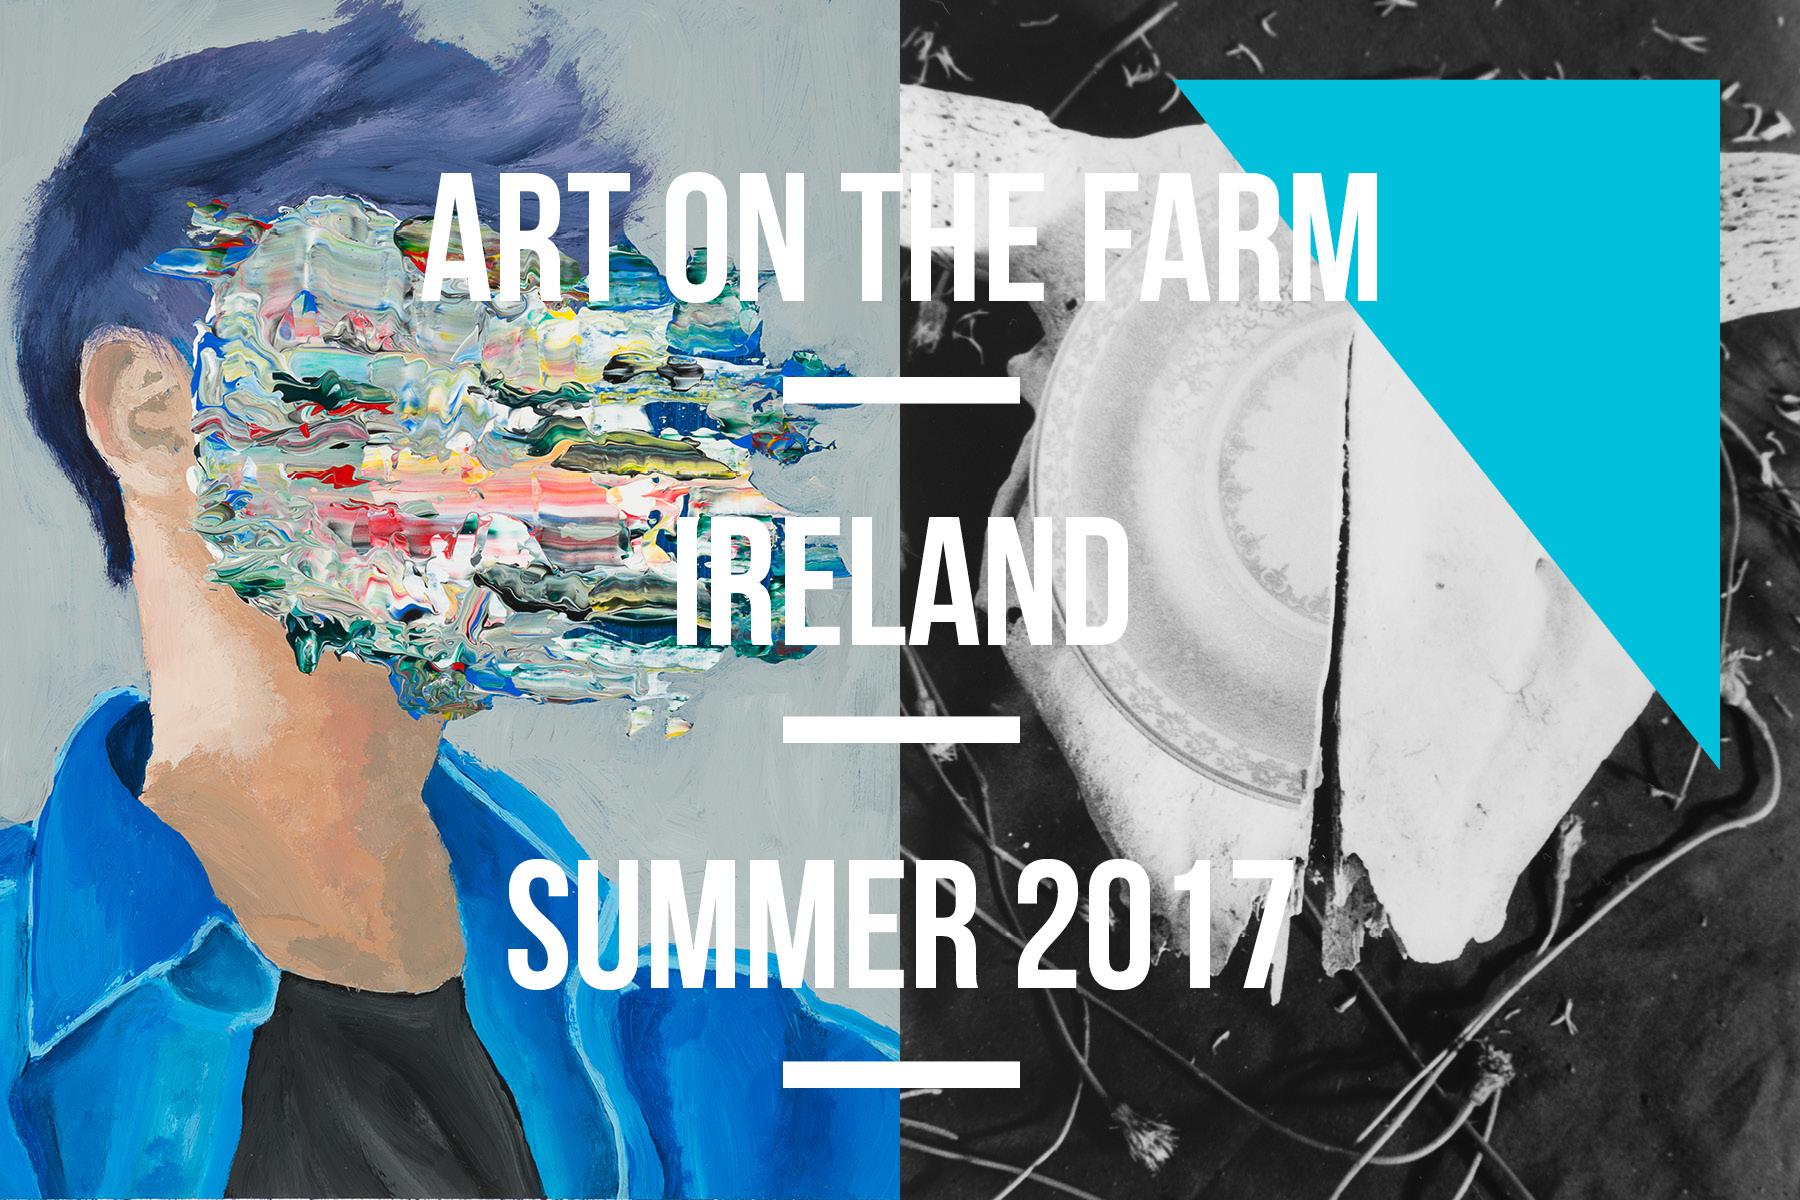 Art on the Farm, Ireland, Summer 2017